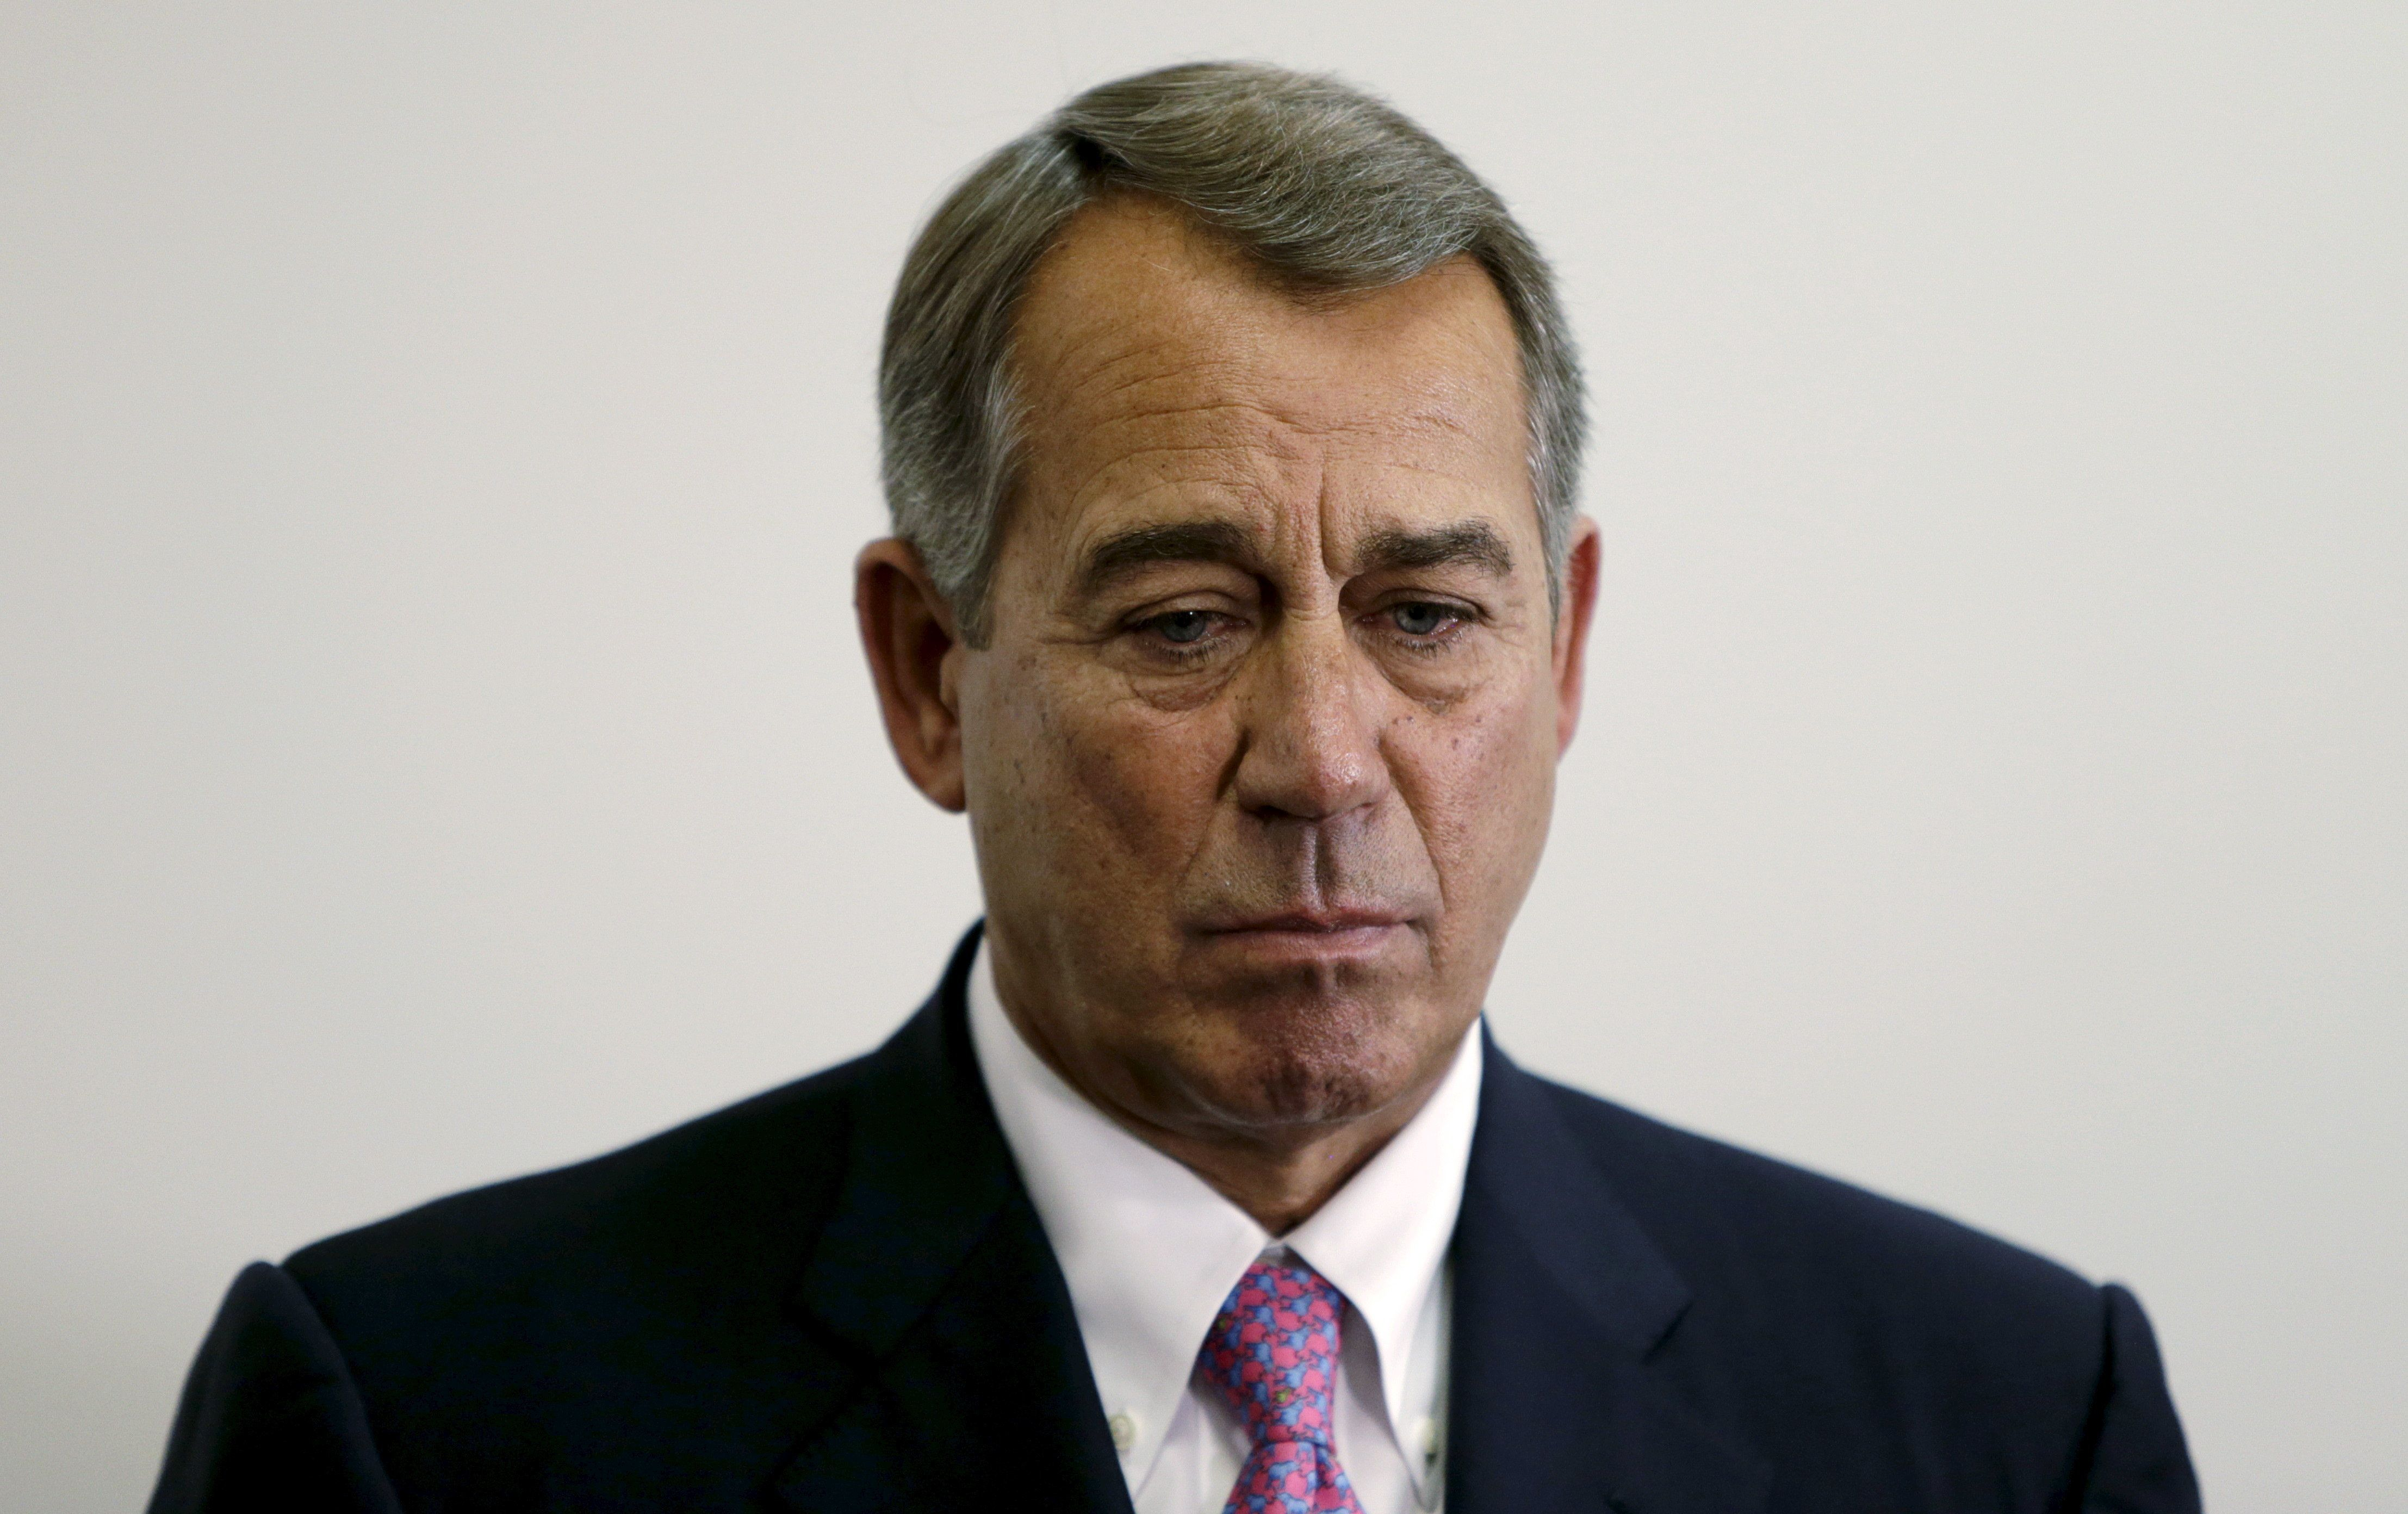 "Outgoing Speaker of the House John Boehner (R-OH) listens to accolades during a news conference on the two-year budget deal with the White House in Washington, October 27, 2015. A two-year budget deal negotiated by the White House and U.S. congressional leaders will be rushed to the floor of the House of Representatives on Wednesday as lawmakers try to pass controversial measures before House Speaker John Boehner retires on Friday. ""We have a budget agreement,"" Boehner said Tuesday. "" He said he wanted to clear the decks for Rep. Paul Ryan who is expected to become the next Speaker of the House. ""As I made it clear a month ago when I announced that I was leaving that I wanted to do my best to clean the barn. I didn't want him to walk into a dirty barn full of you know what,"" Boehner said. REUTERS/Gary Cameron"